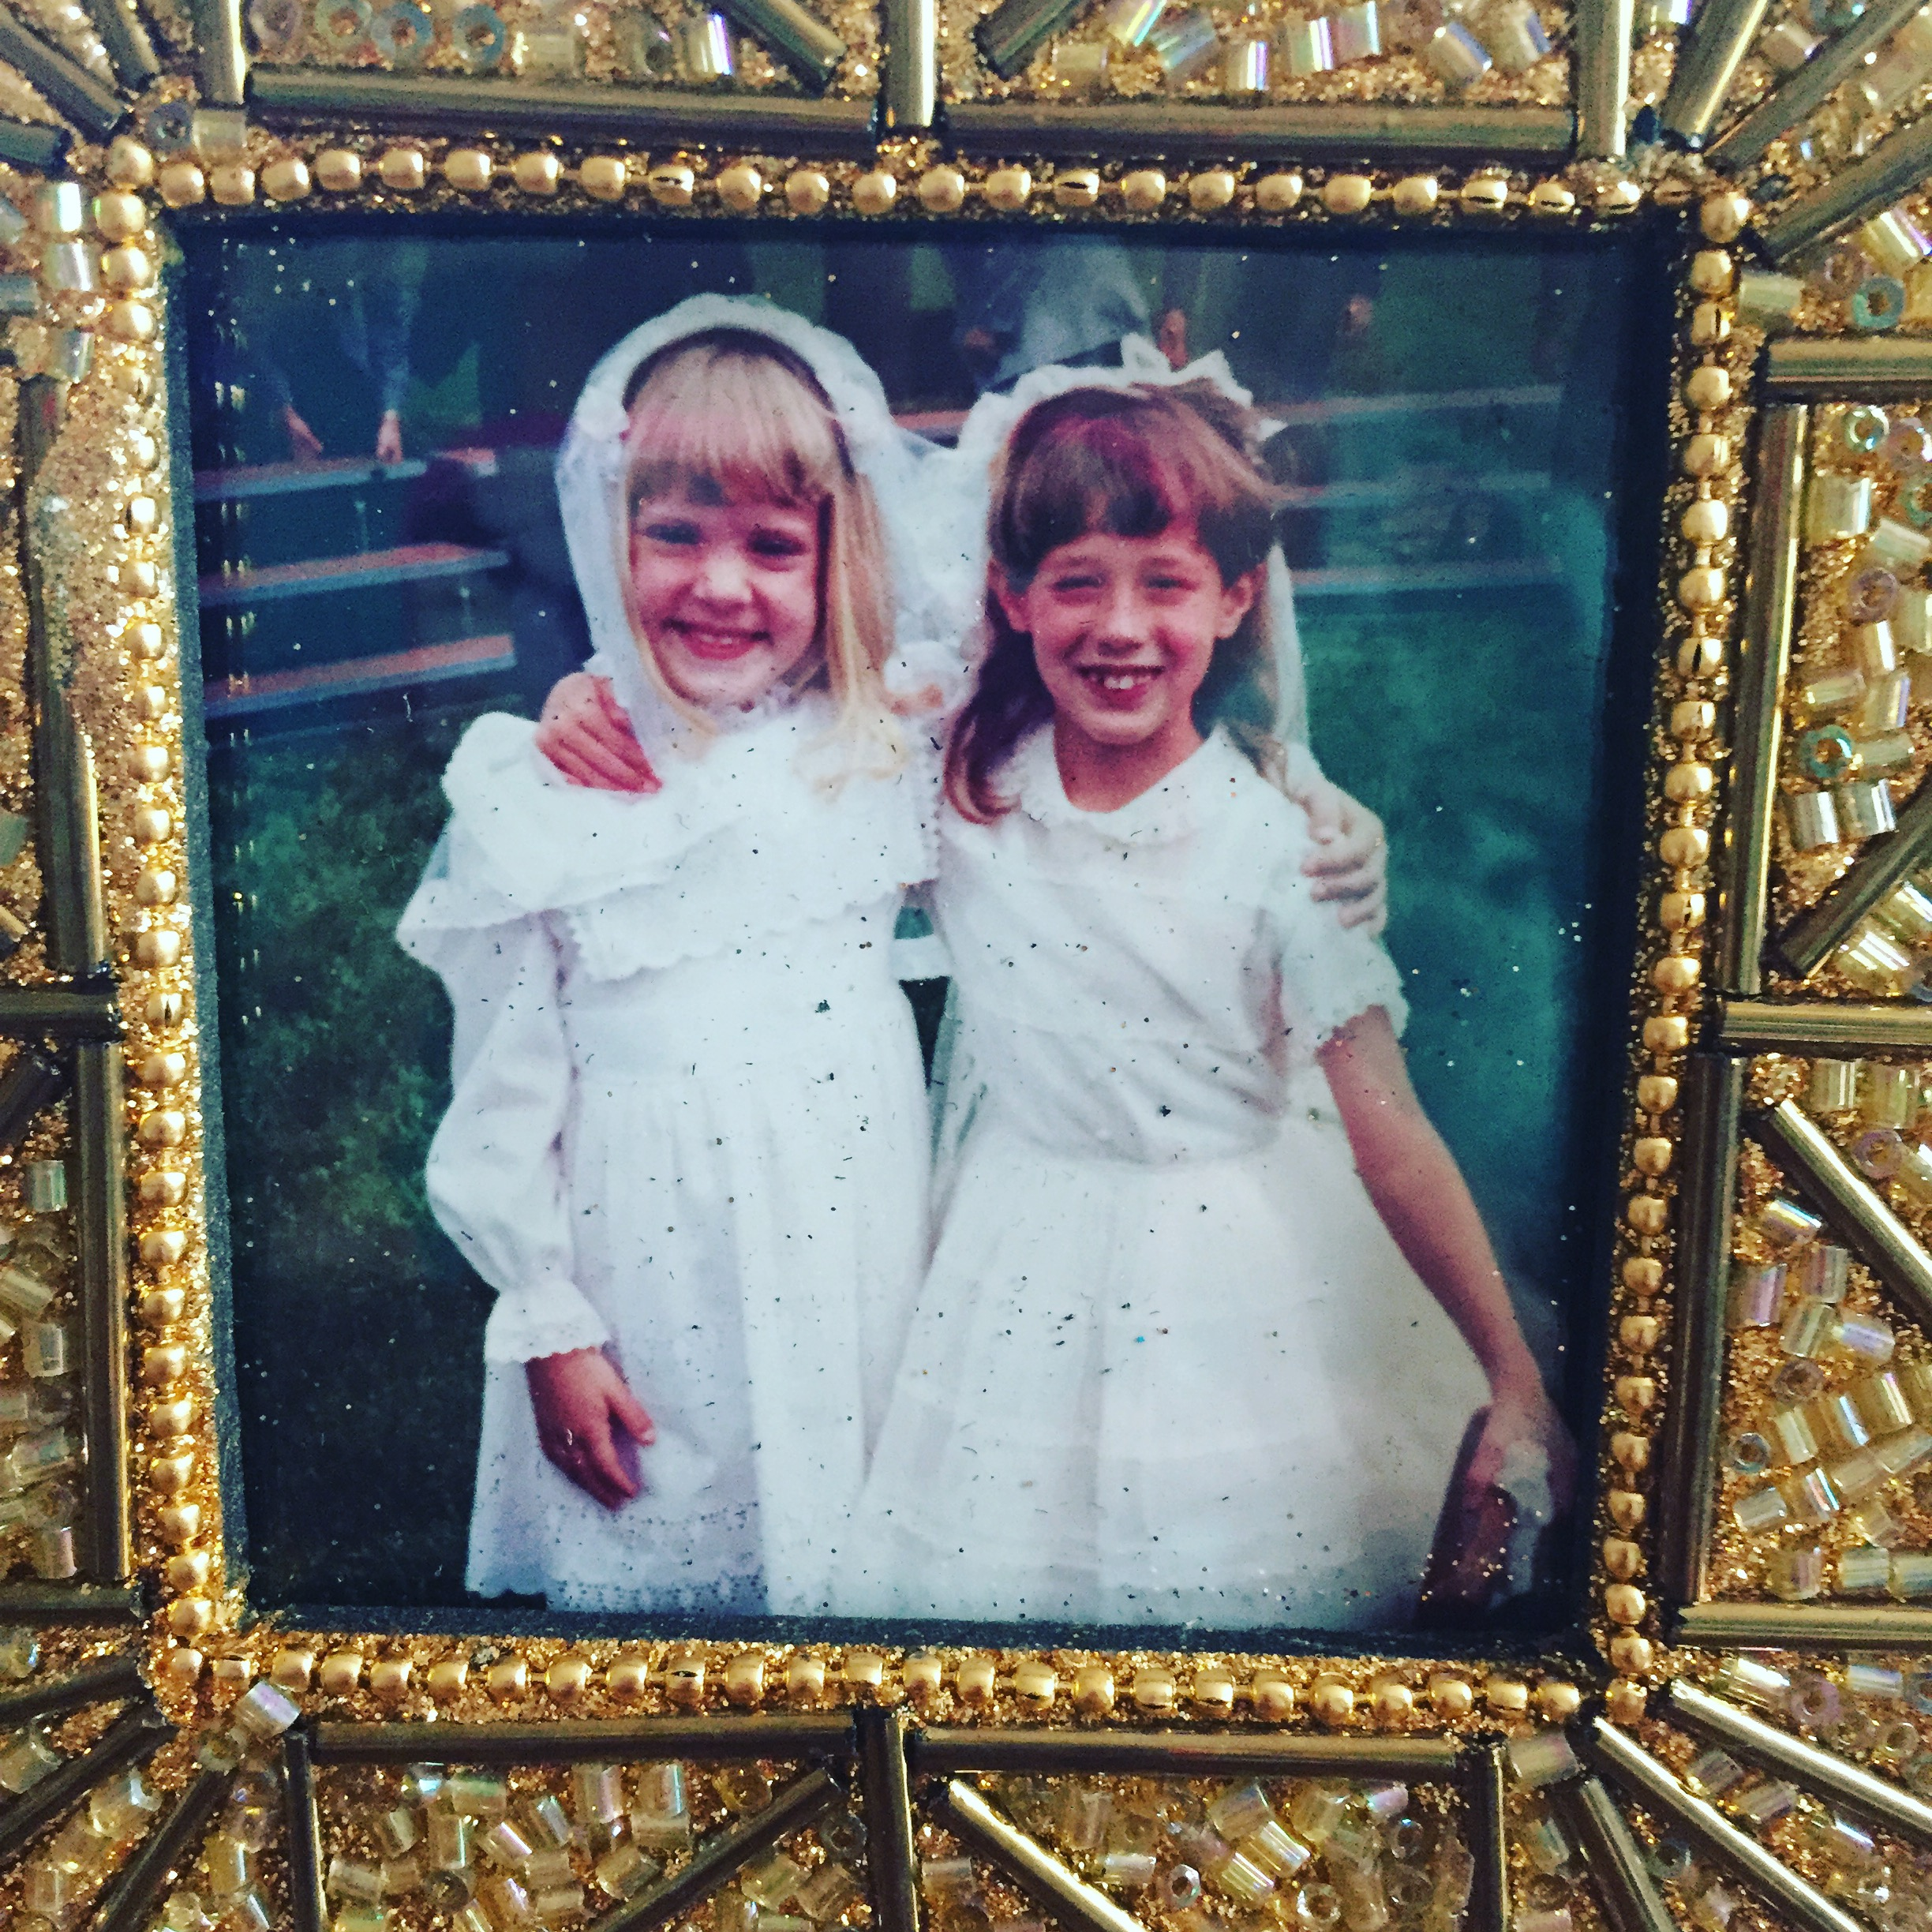 Me with my best friend, Anne (on the right), after our First Communion Mass in April 1990. I had just turned eight years old. I wouldn't be diagnosed with CF until three years later.